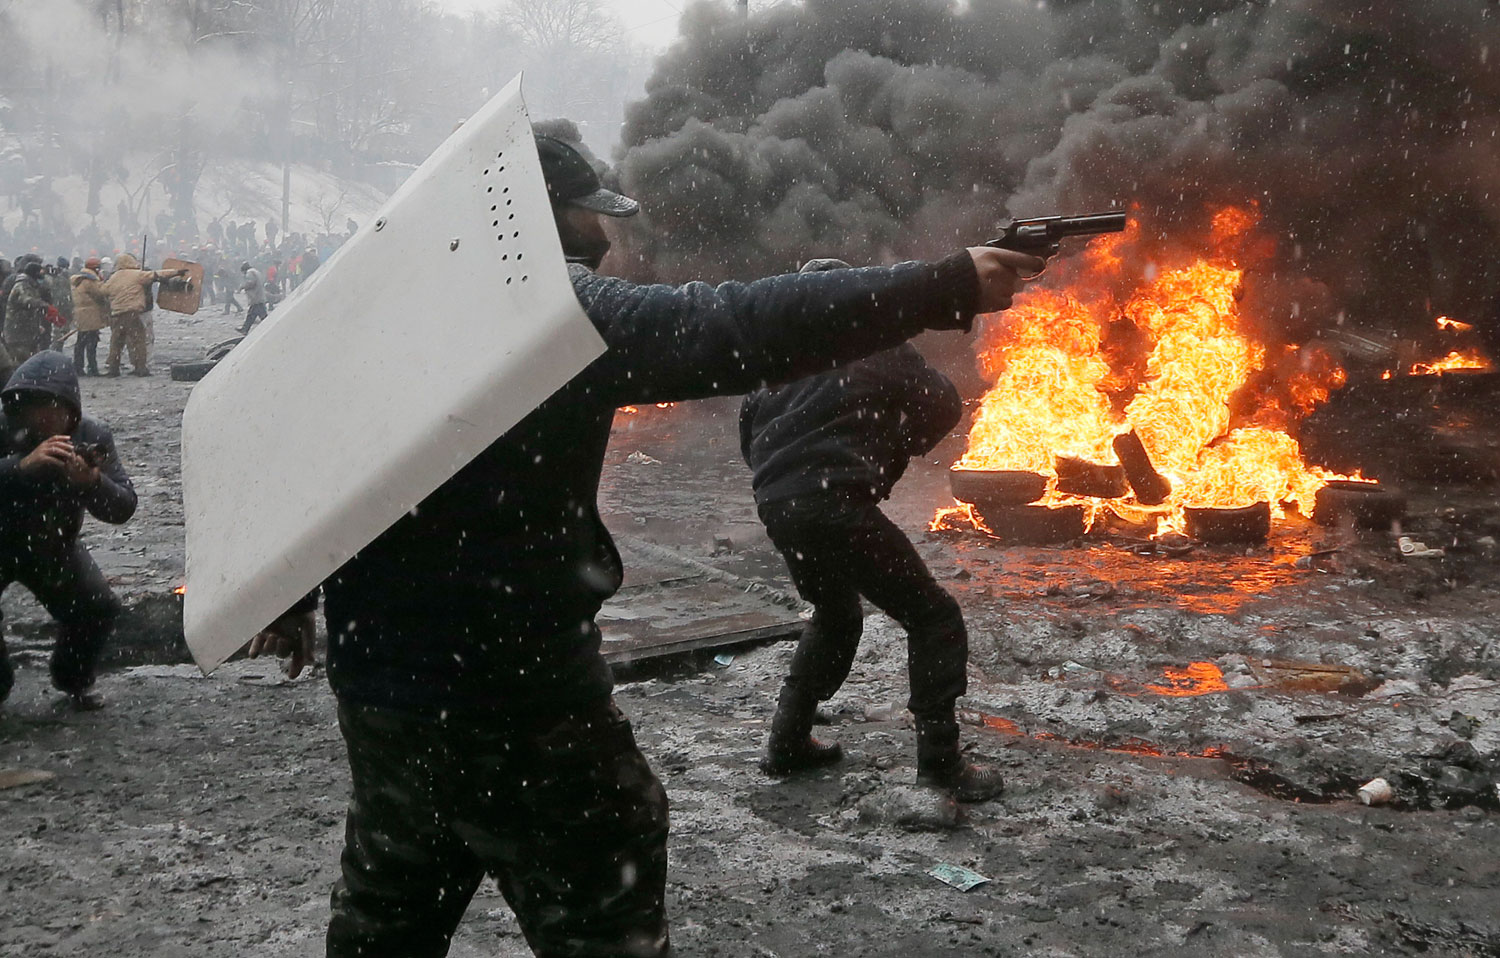 A protester points a handgun during a clash with police in central Kiev, Jan. 22, 2014.